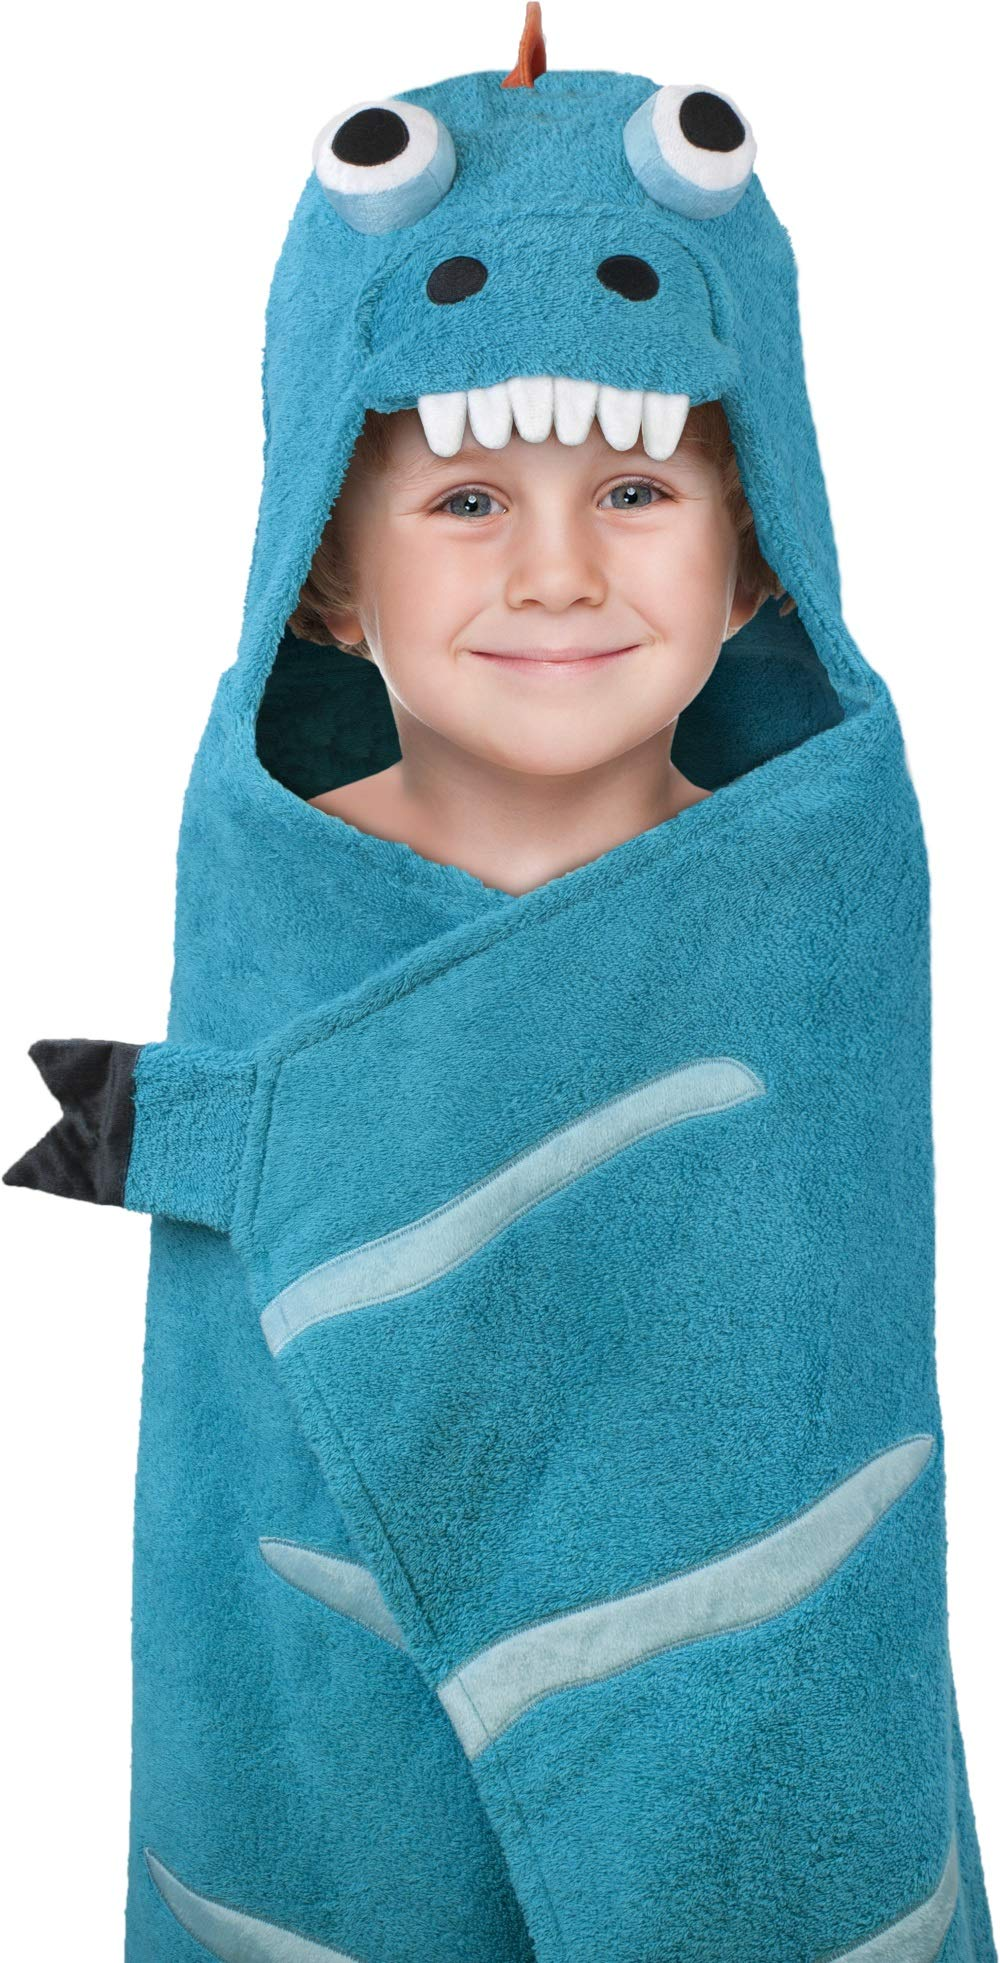 Hooded Towel for Kids, Oversize Cotton Character Hood Towel - Makes Getting Dry Fun - Ideal Beach Towels for Toddlers & Small Children - Use at The Pool or Bath Time, 26 x 45'', Blue/Orange Dino